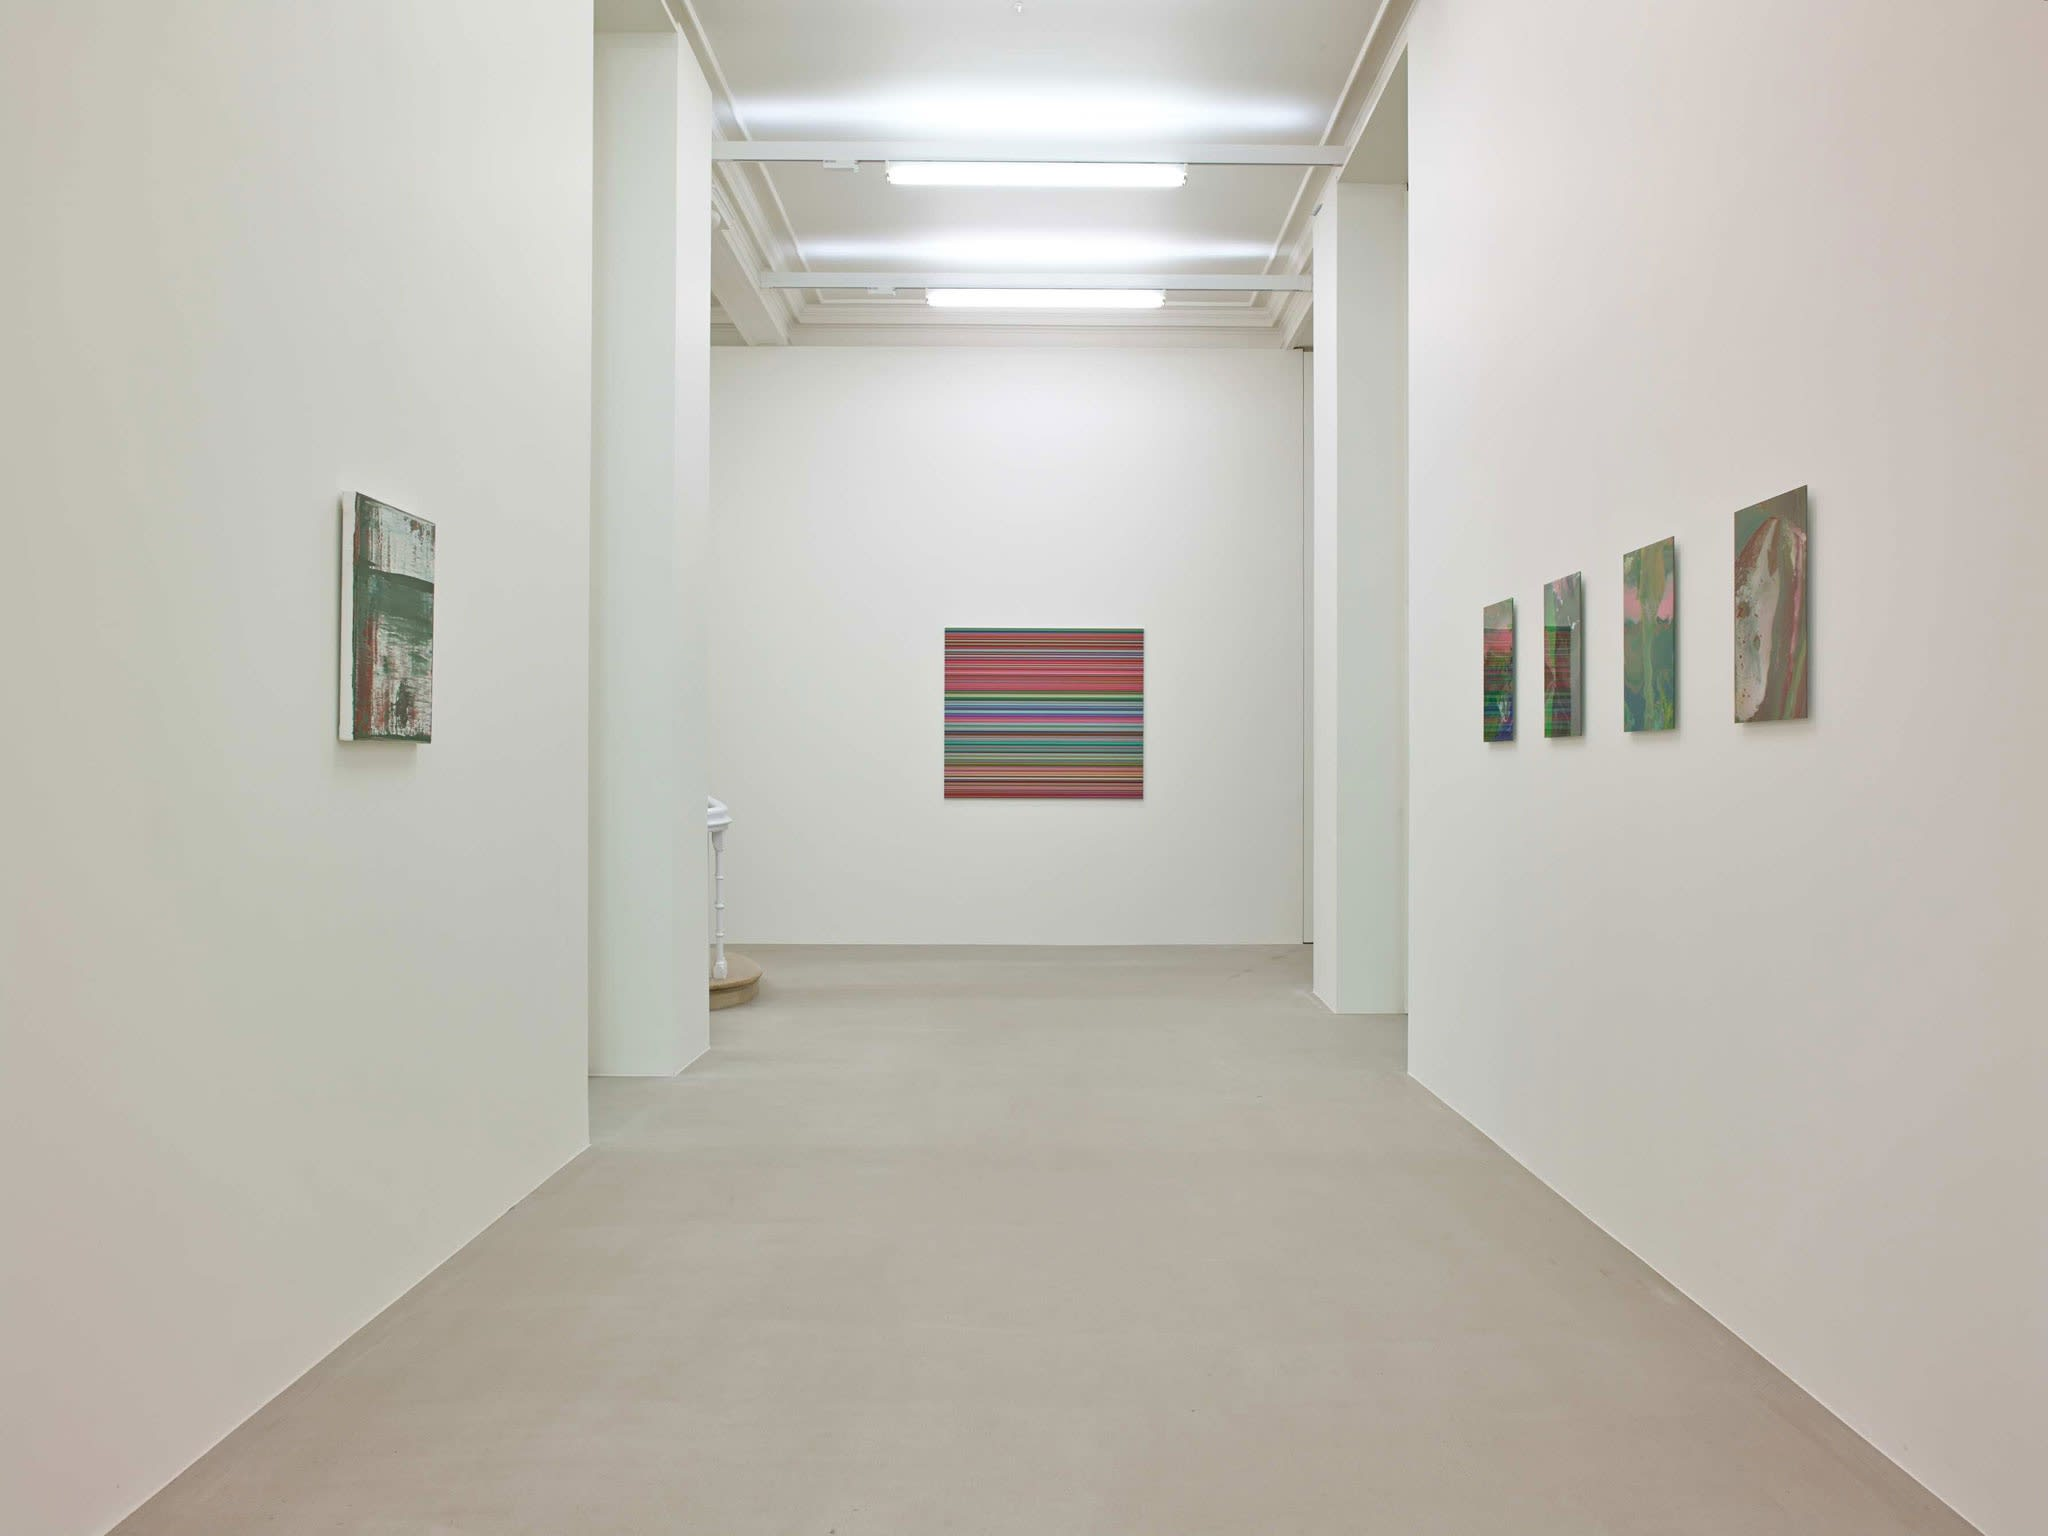 On a white wall down a hallway is a square painting, made up of hundreds of perfect horizontal strips of various colors. On both walls of the hallway hang small abstract paintings (1 right, 4 left), mostly green in hue.